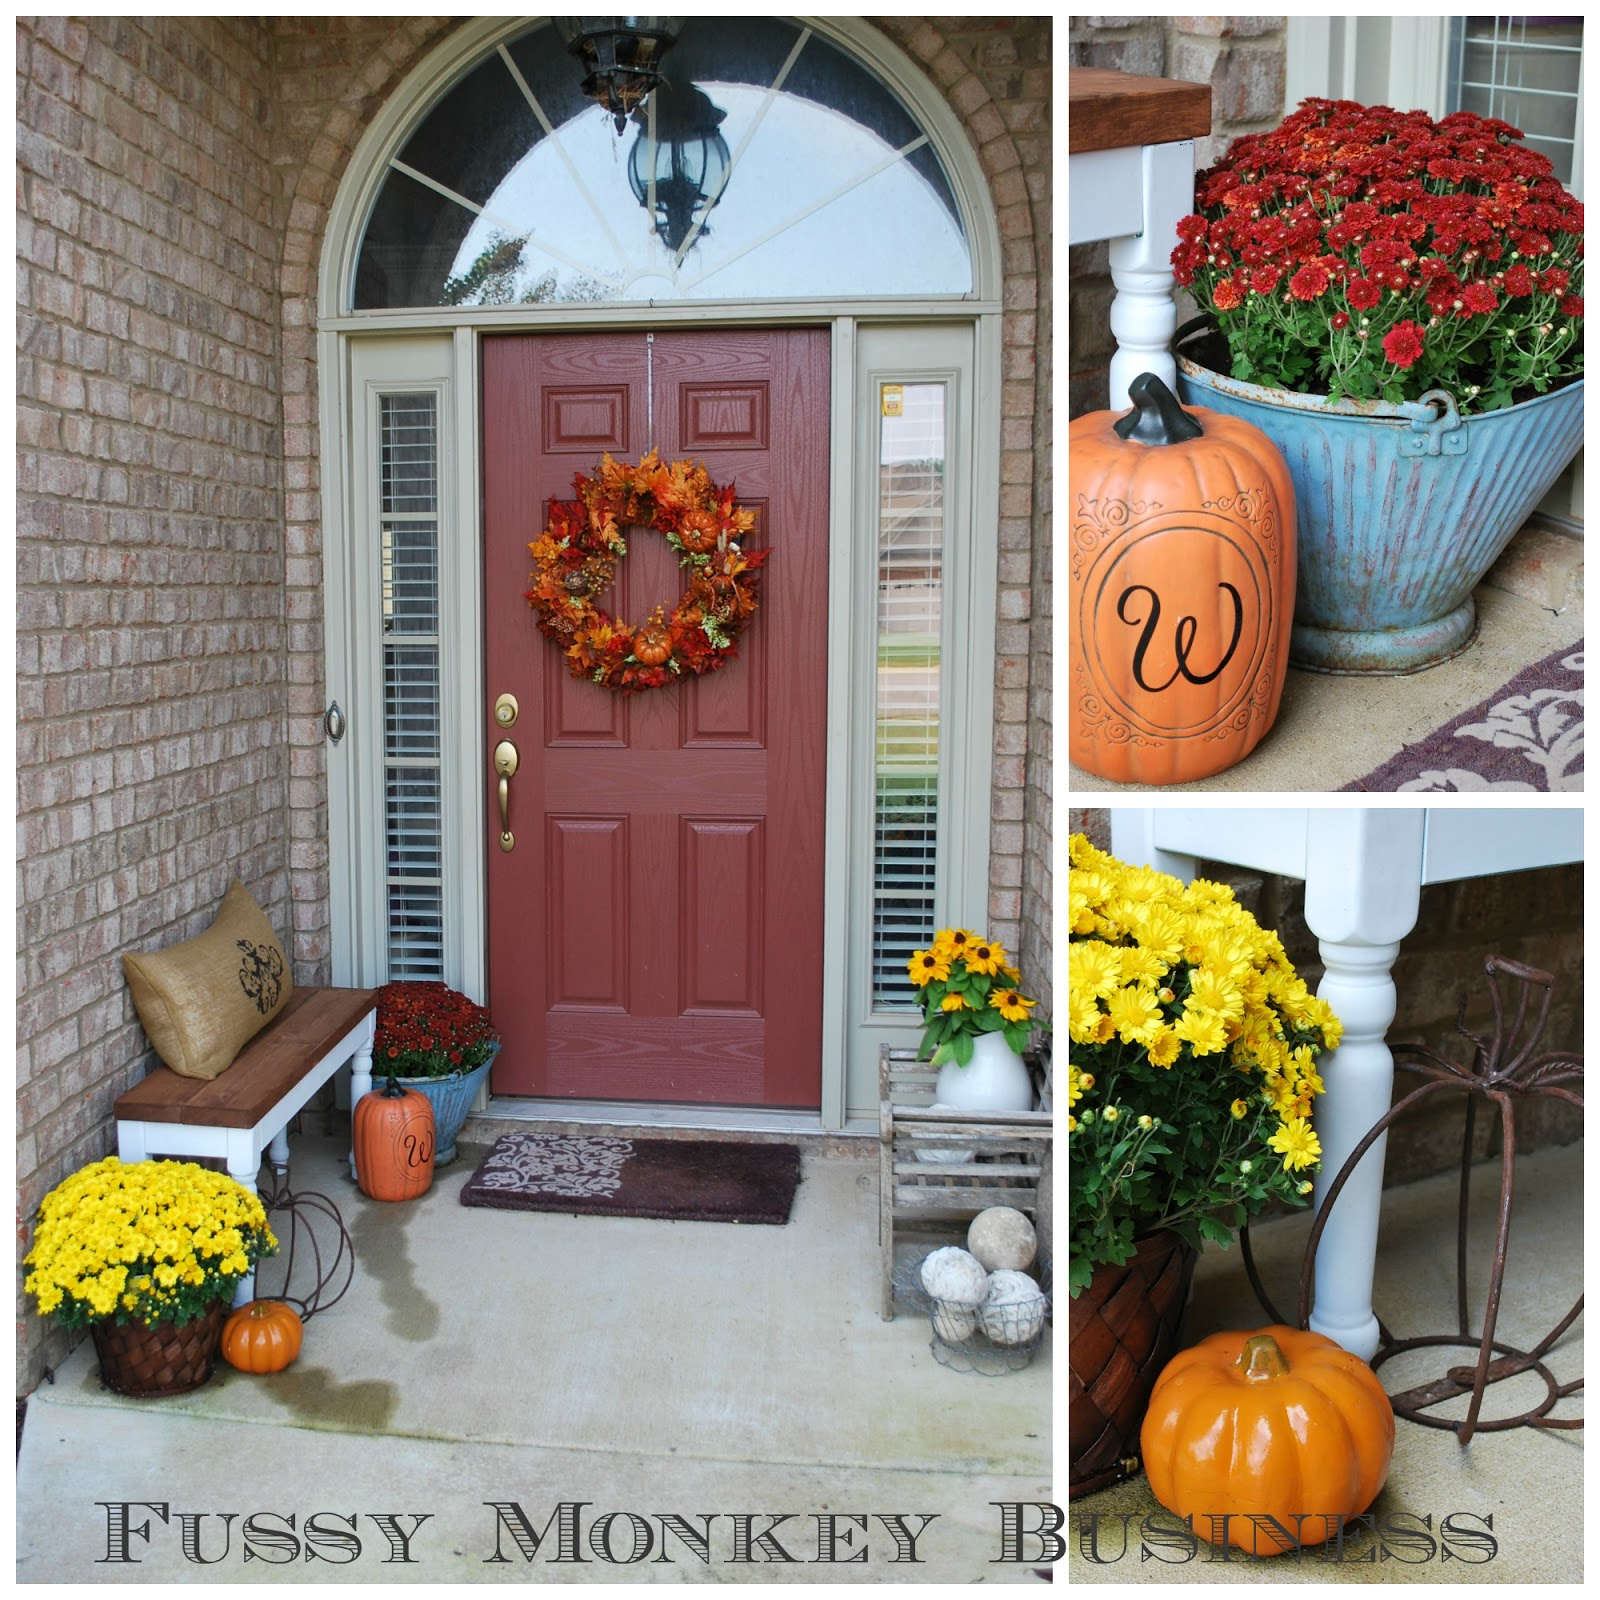 Fall Decorations For Small Front Porch